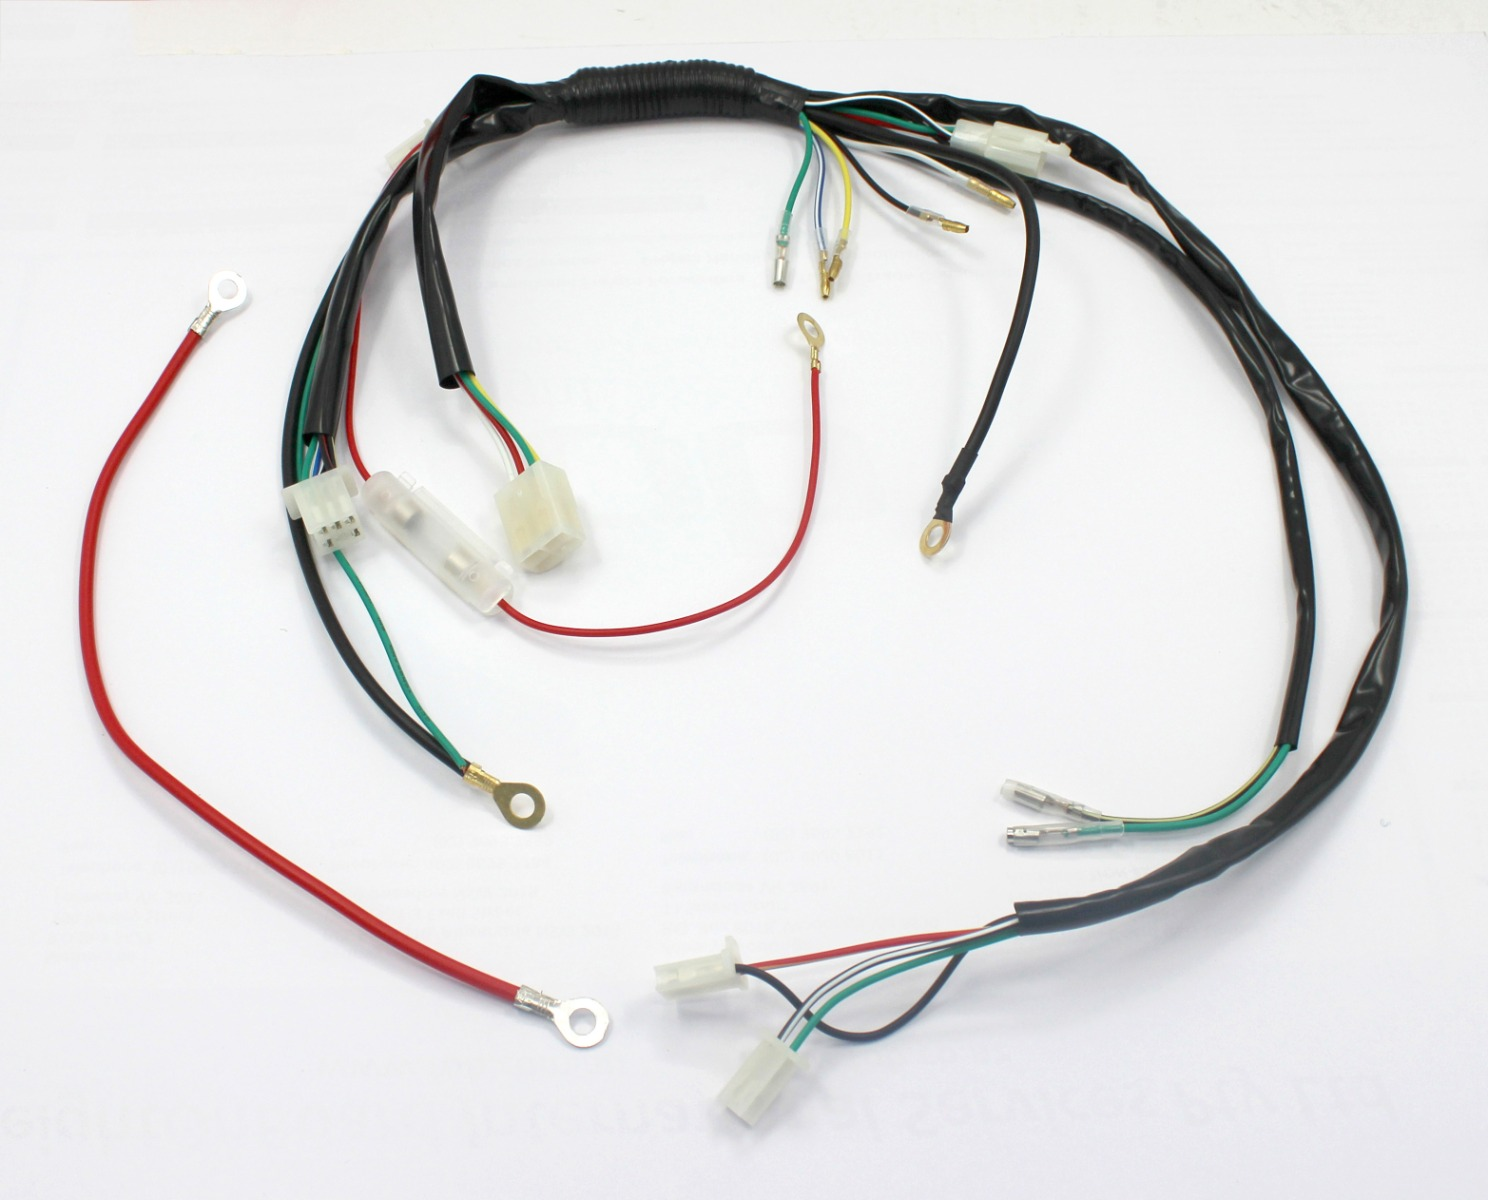 pit dirt bike wiring loom harness for electric start 50cc 90cc listing only for wiring harness loom set